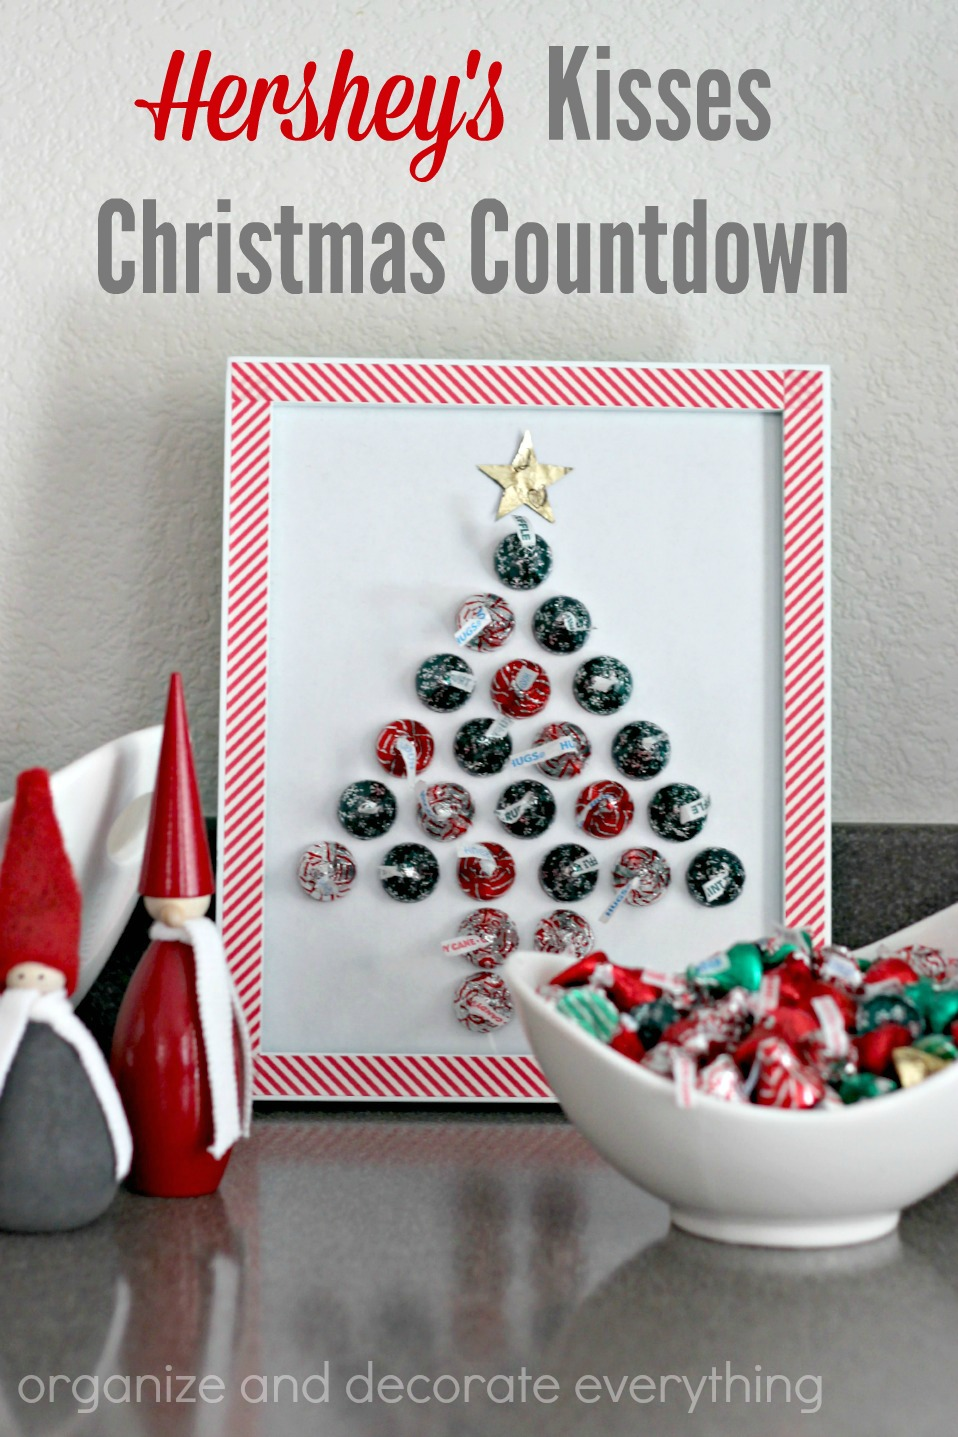 Hershey\'s Kisses Christmas Countdown - Organize and Decorate Everything